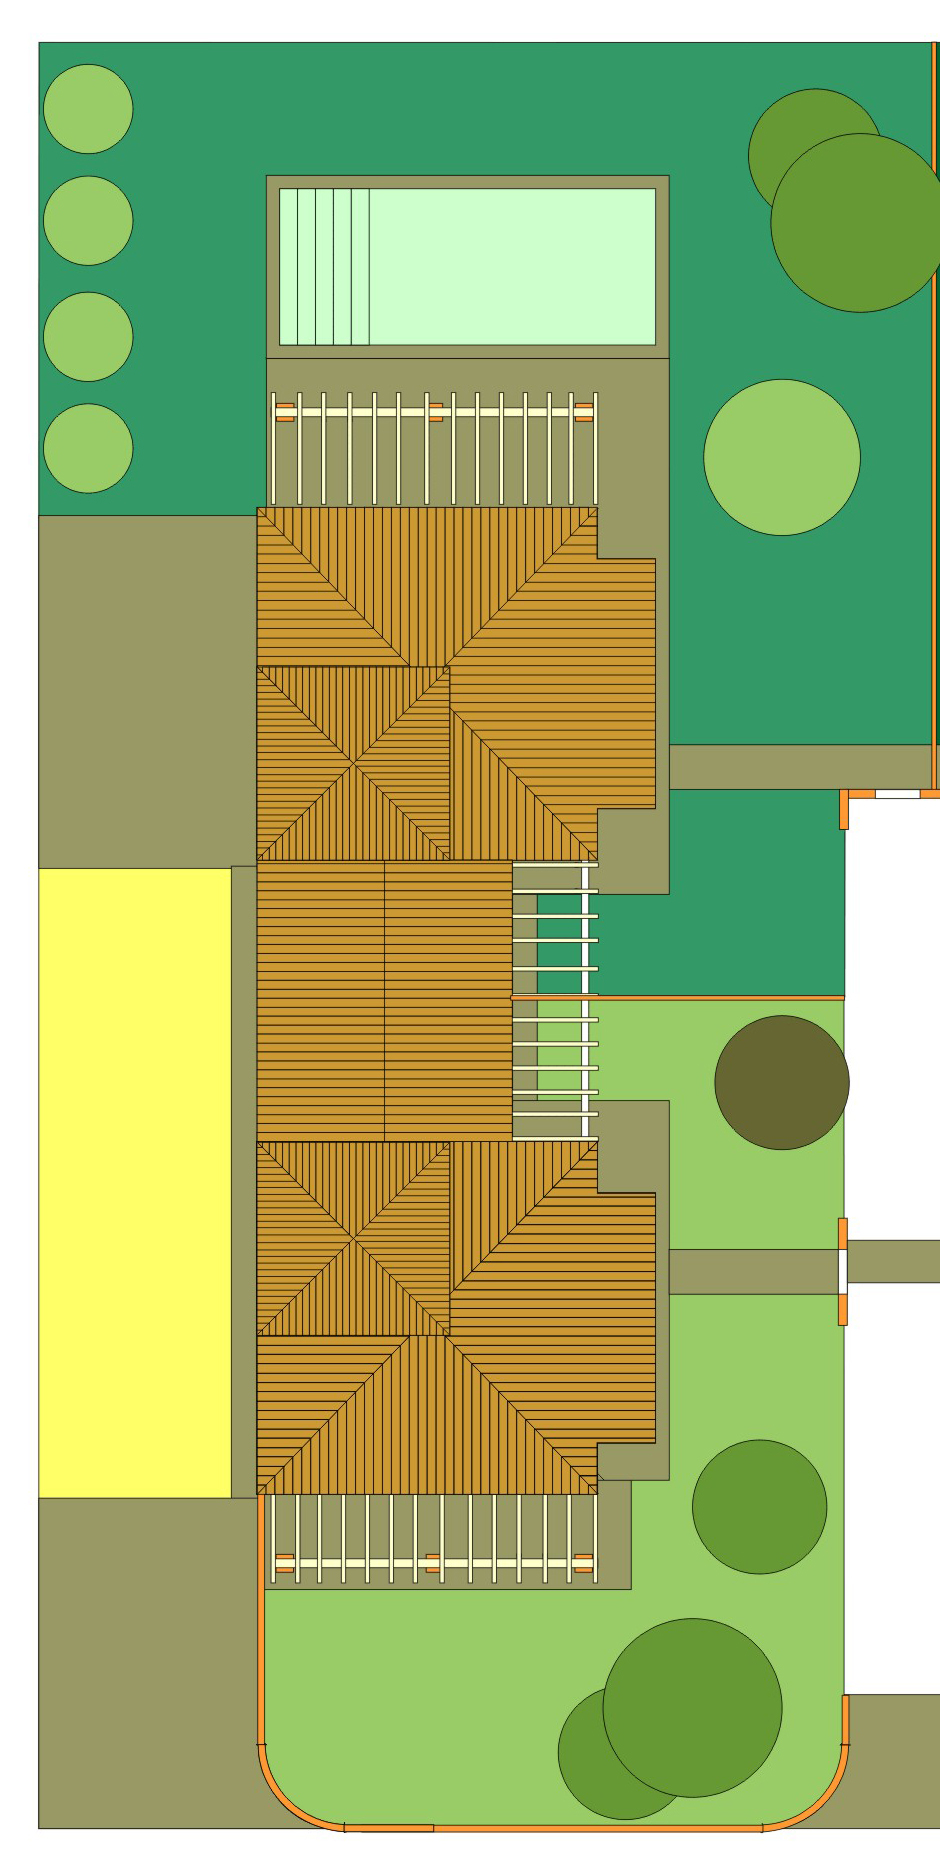 Plan 3/3 for ref. PE001